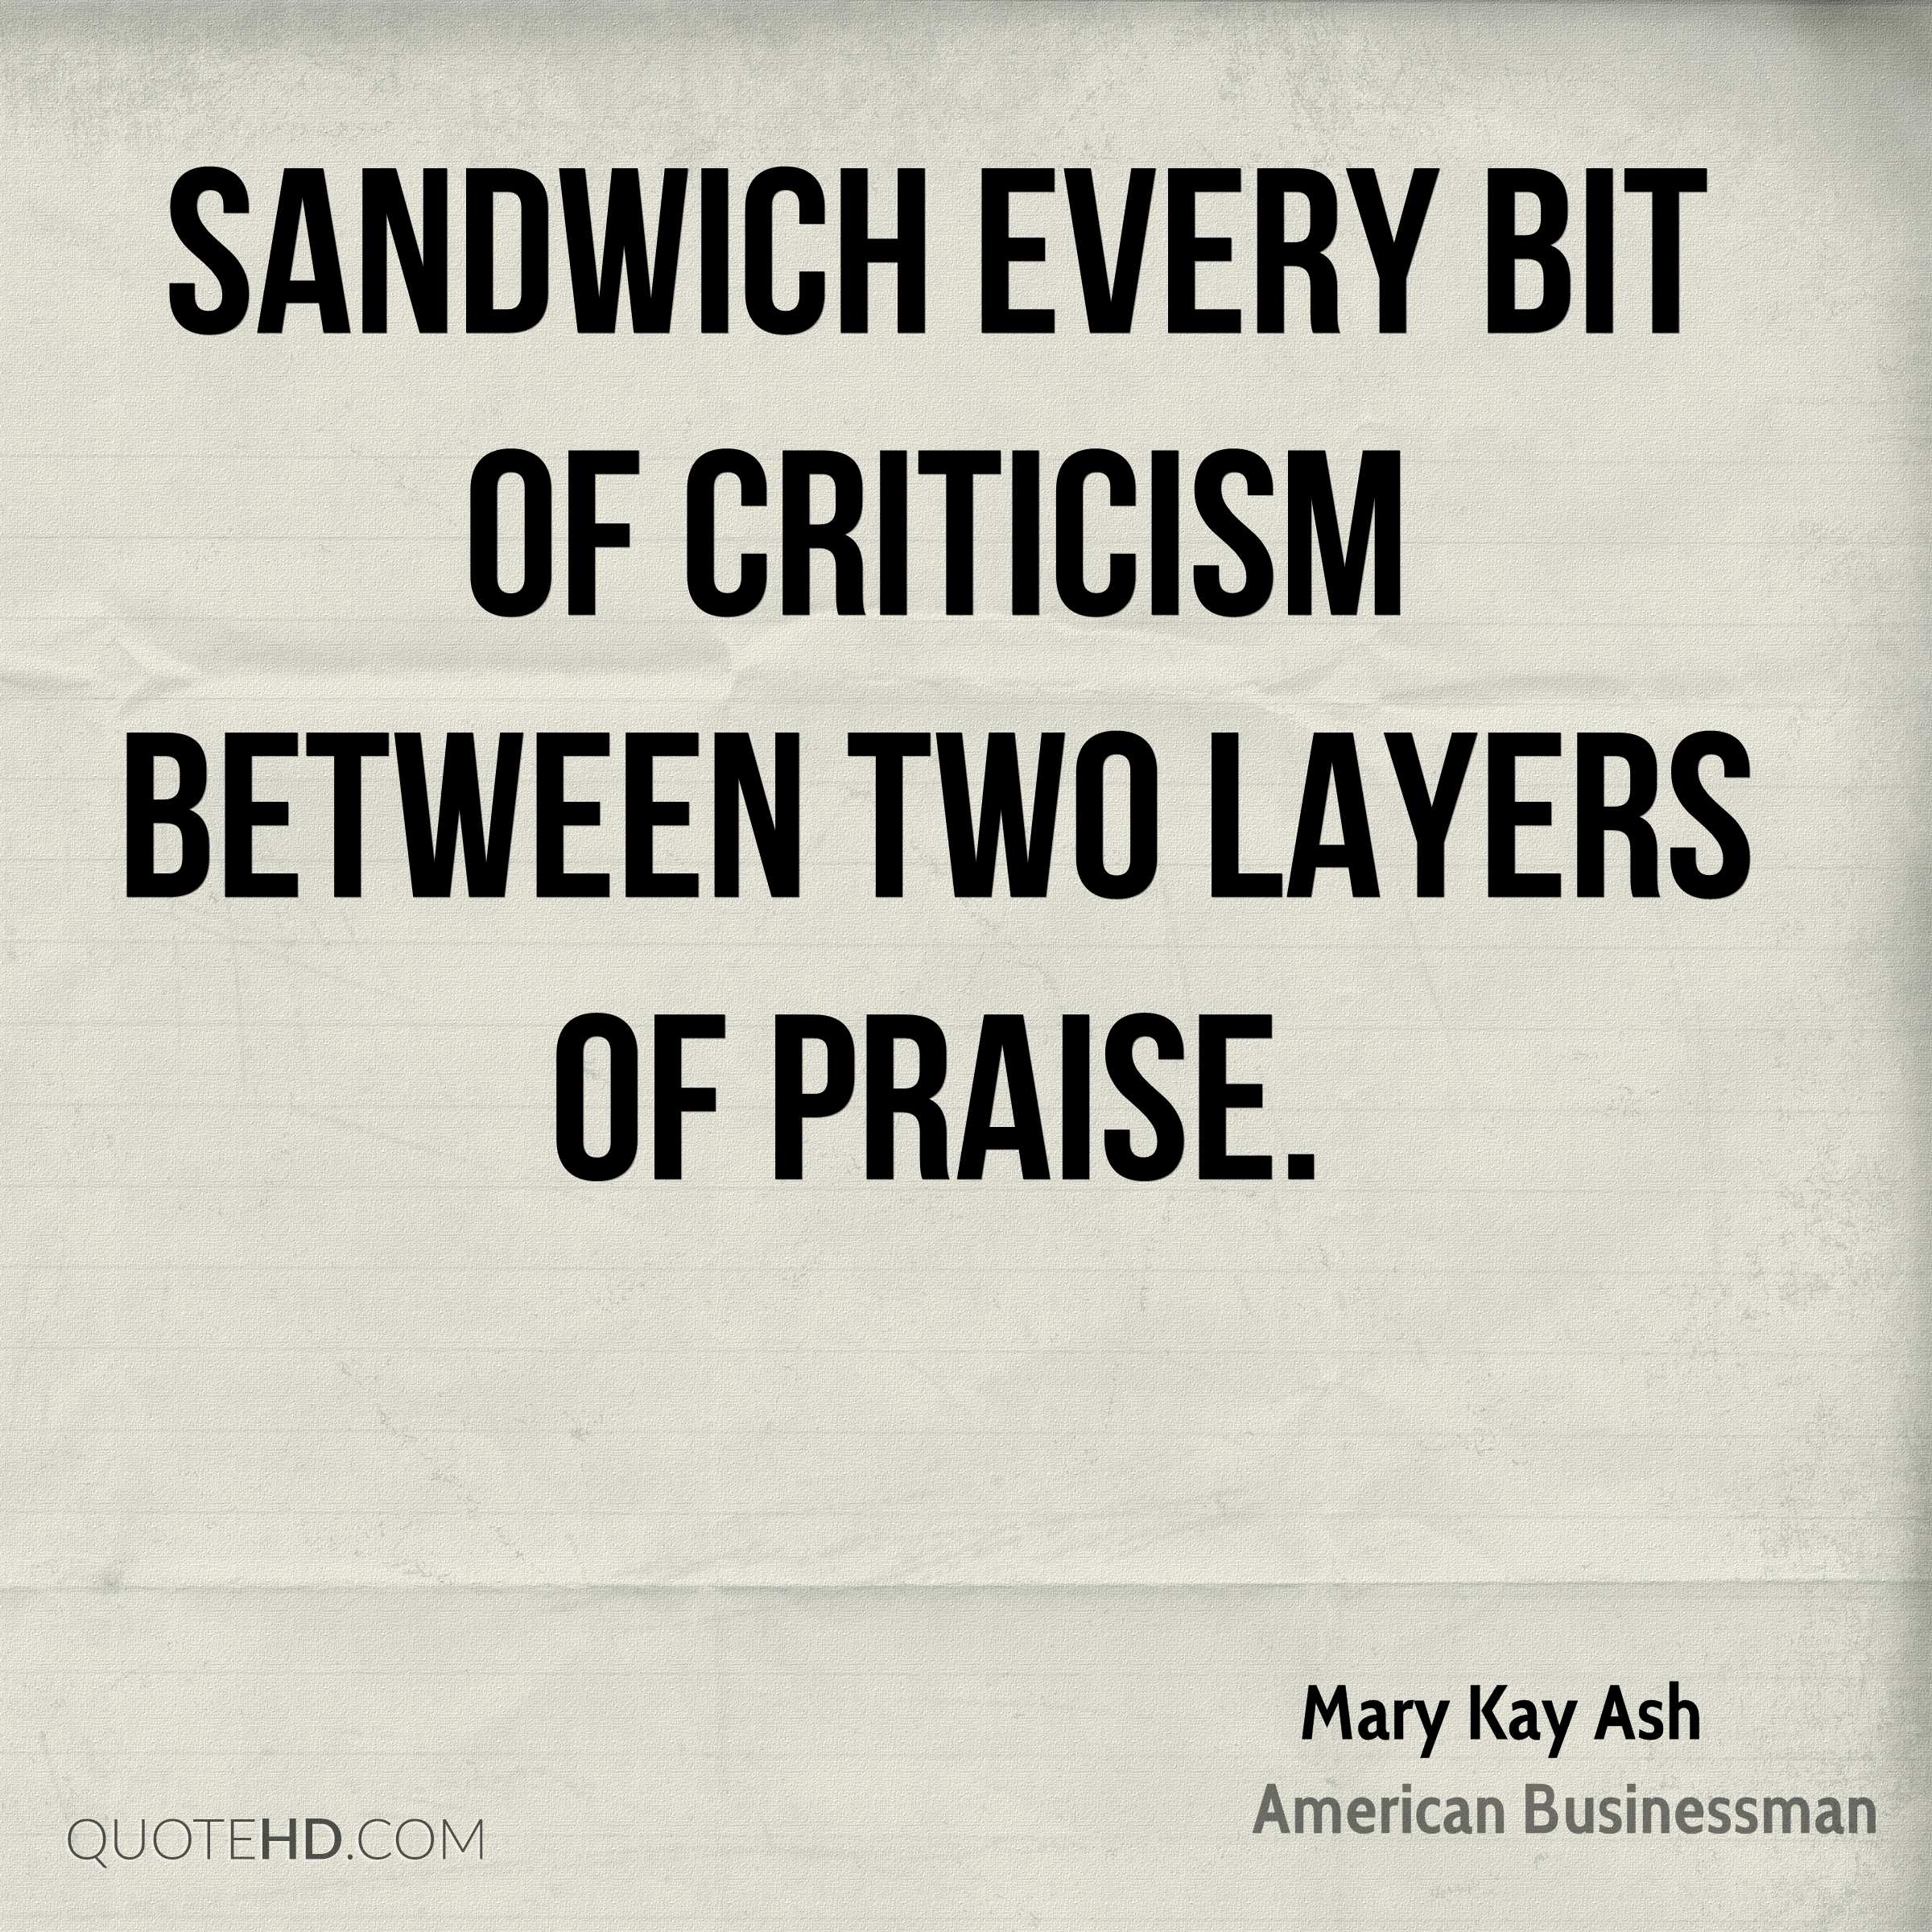 Sandwich every bit of criticism between two layers of praise.